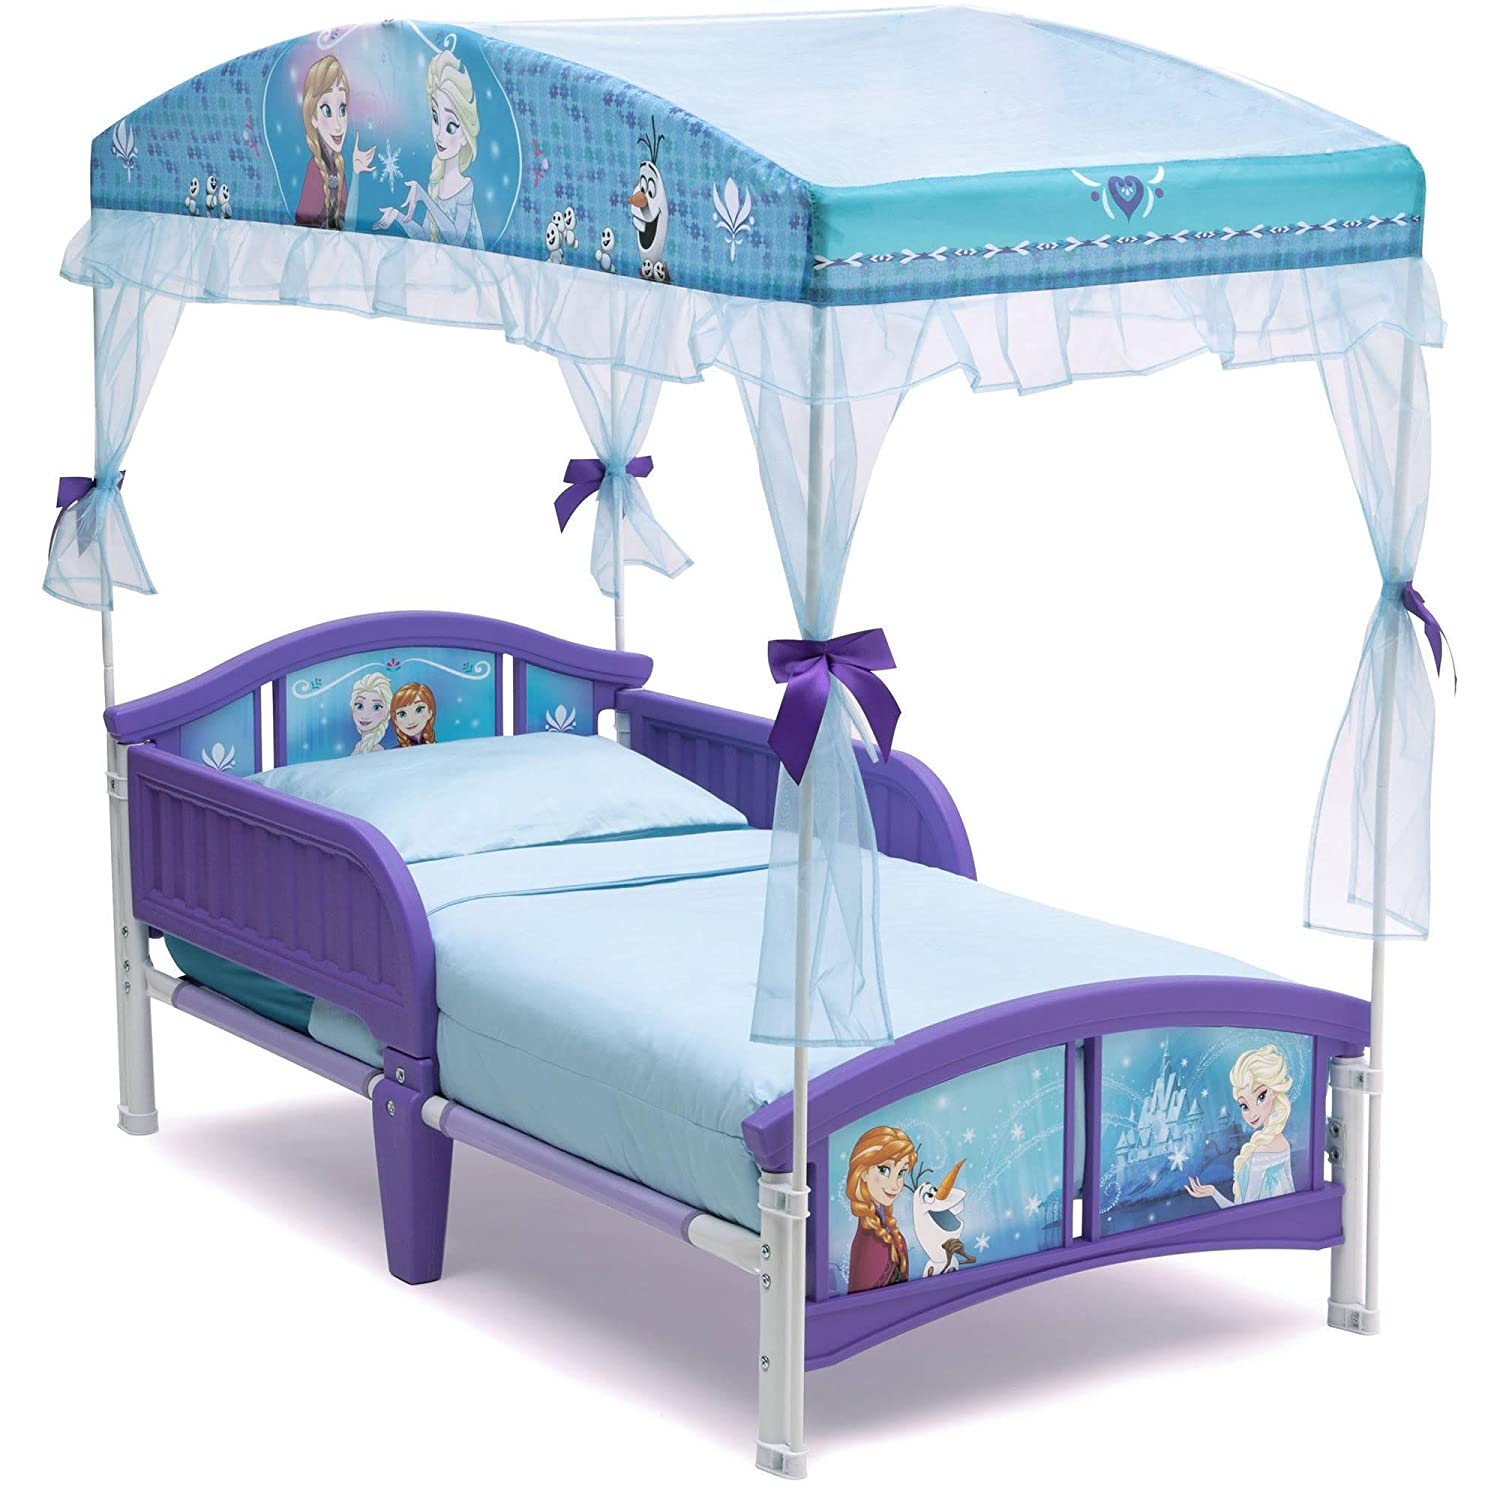 - Disney Frozen Toddler Bed Canopy Anna Elsa Olaf Kids Girls Delta